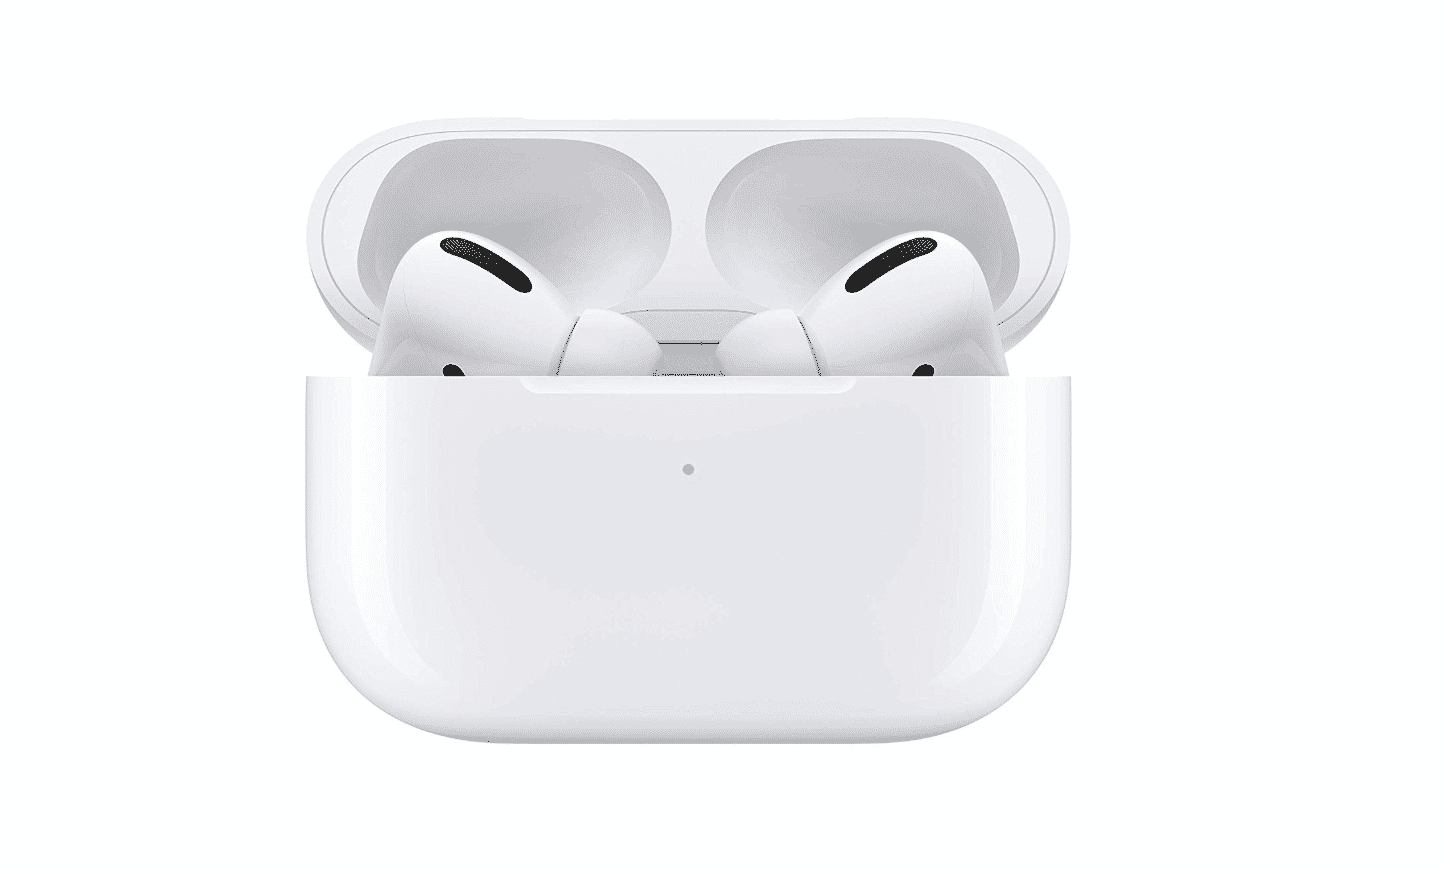 Apple's Newest AirPods Pro Gets Marked Down to $235